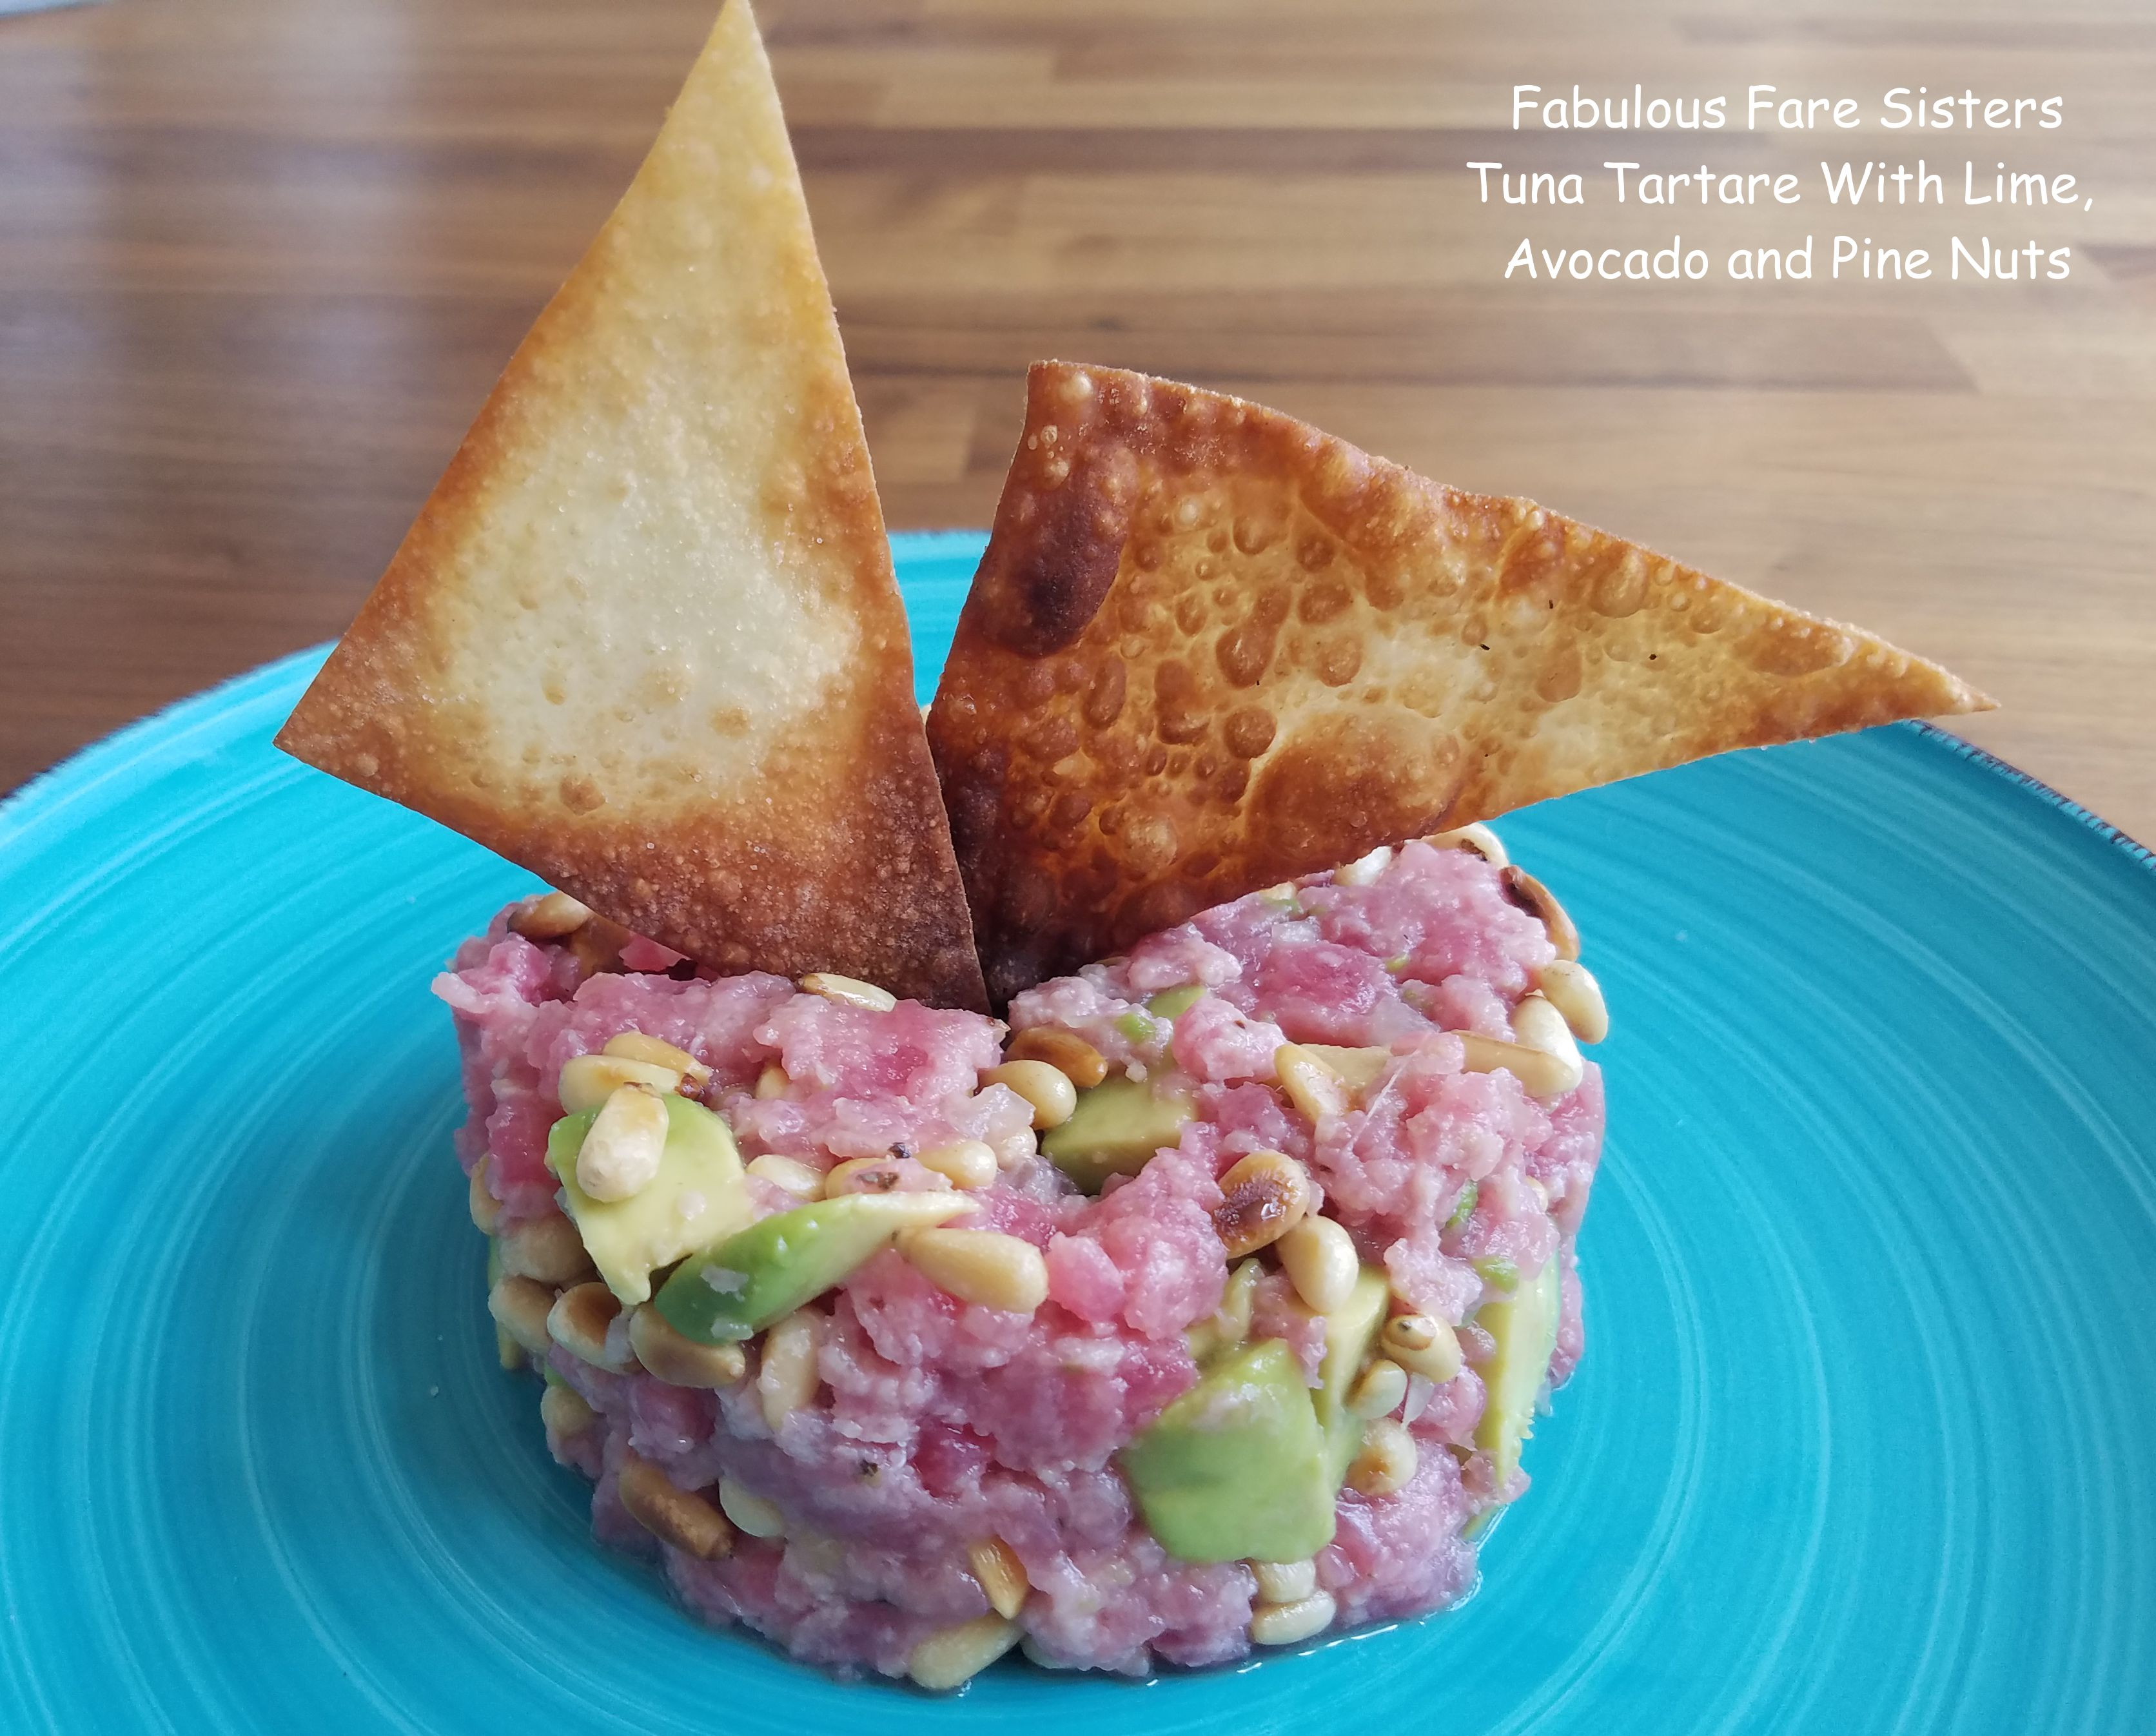 Tuna Tartare With Lime, Avocado and Pine Nuts